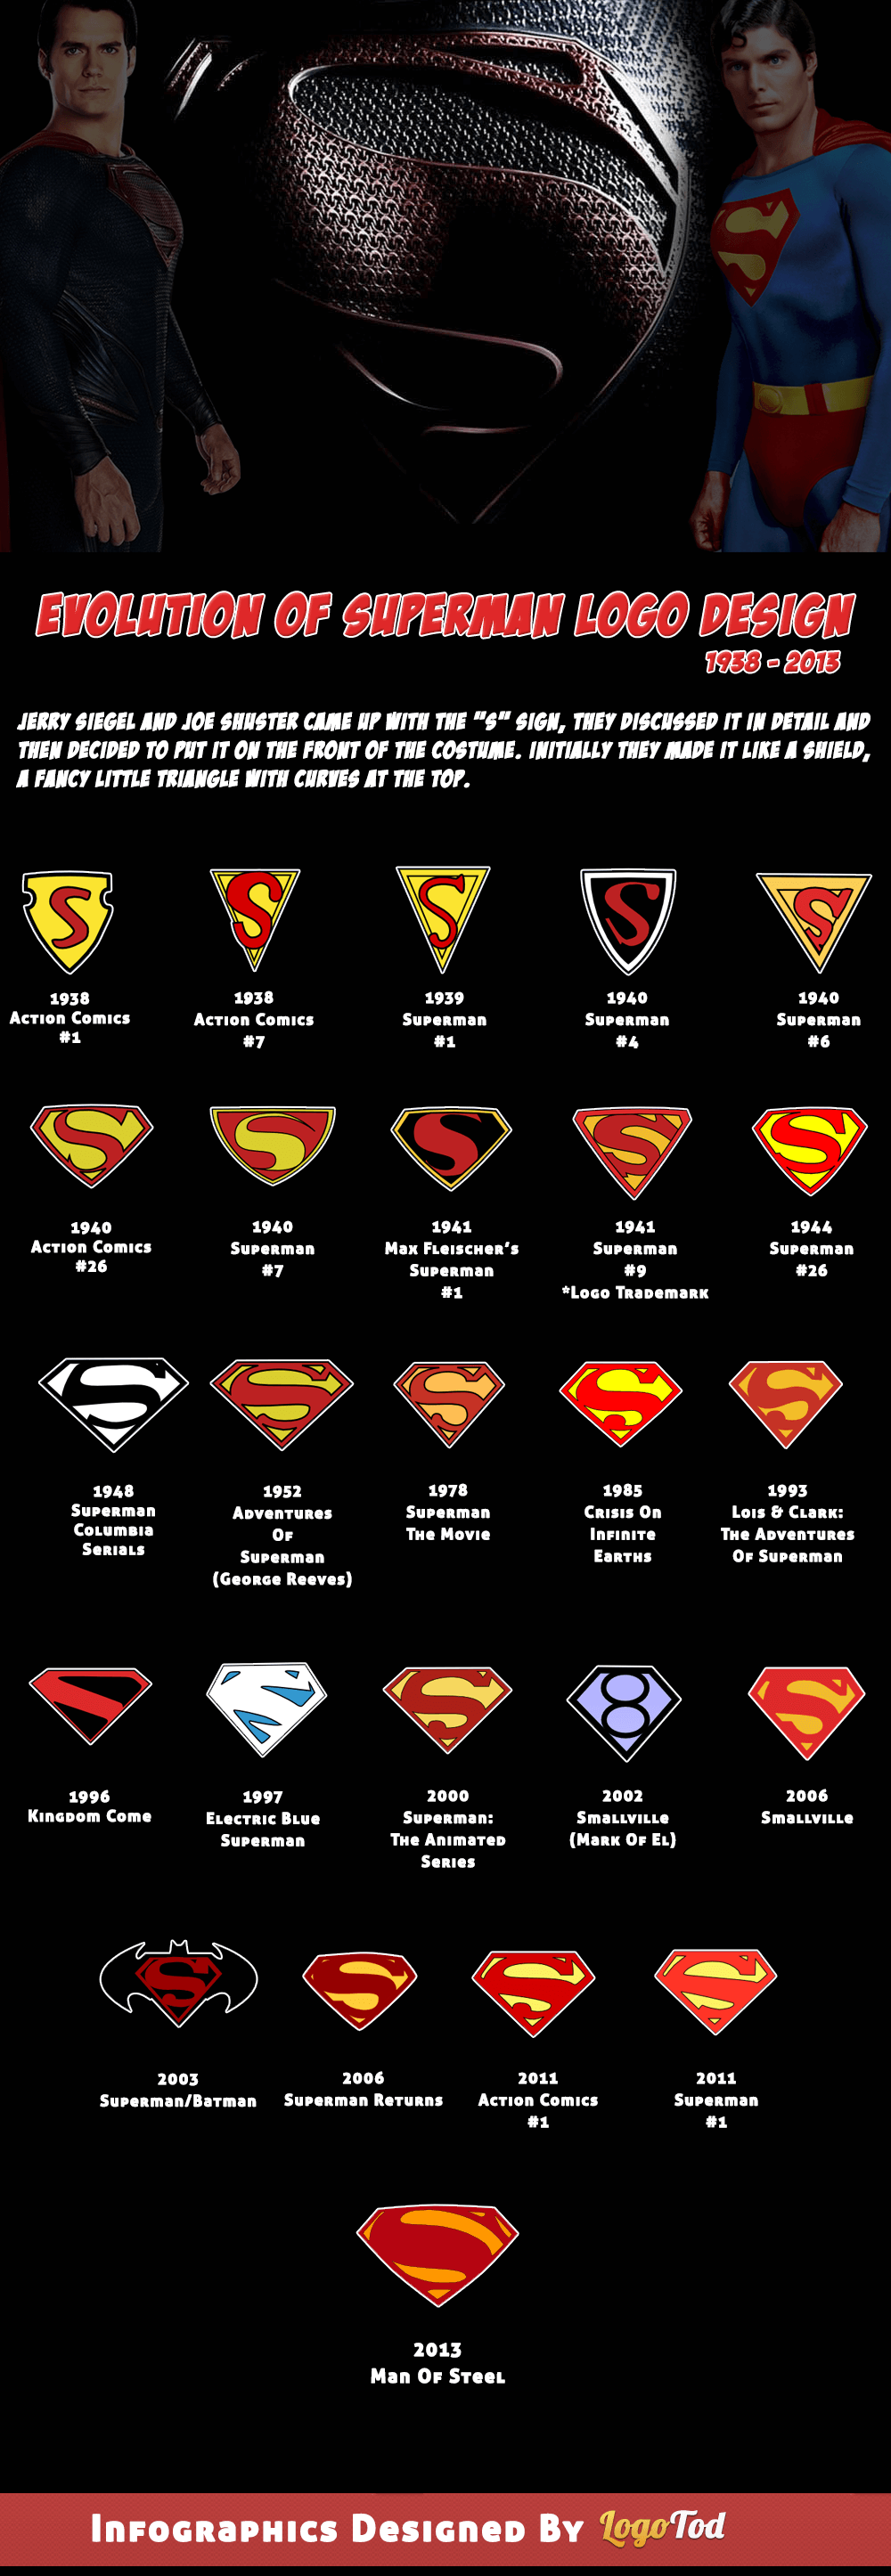 evolution-of-superman-logo-design-infographic